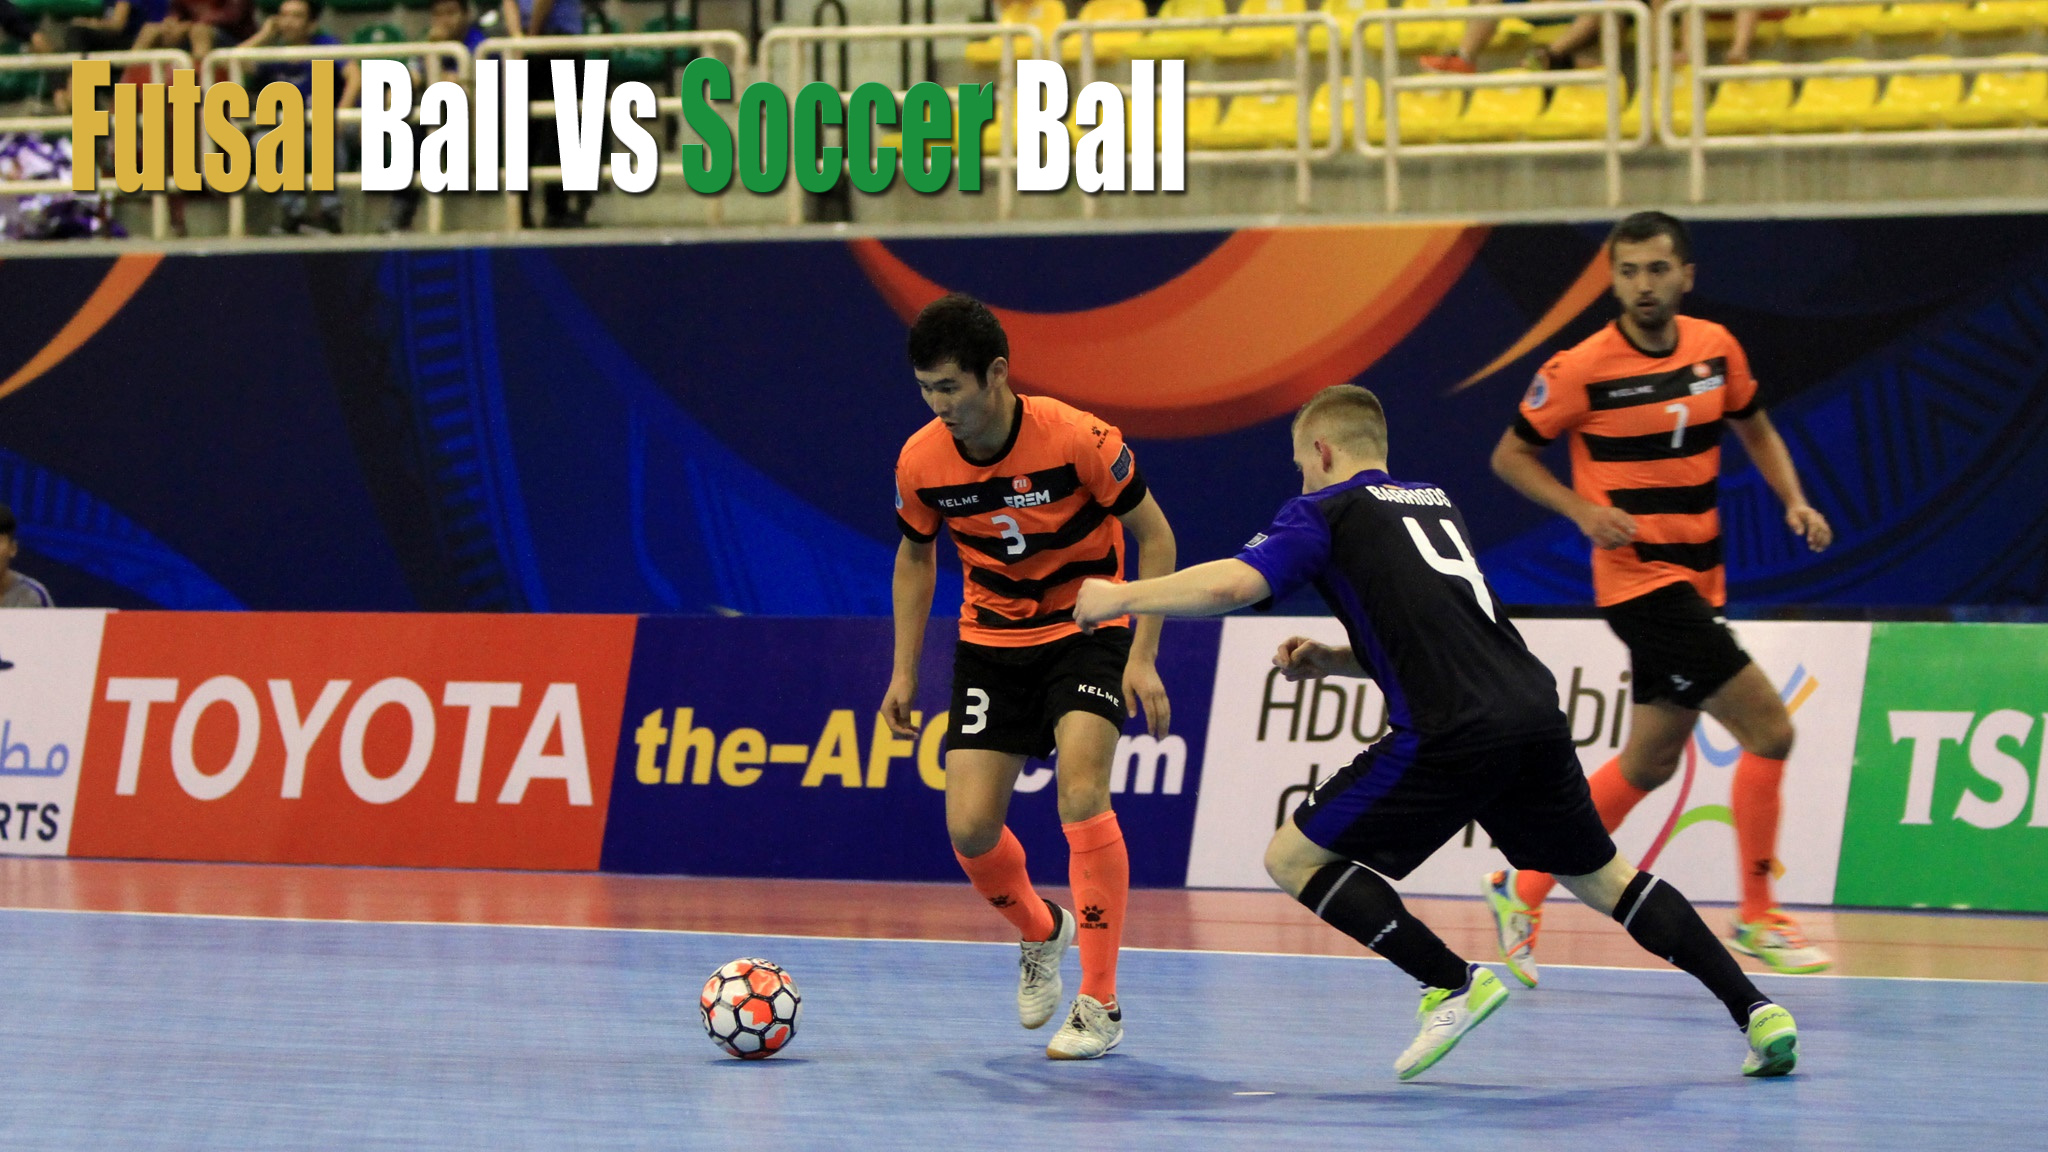 Coaching Your First Futsal Tournament Futsal Balls, Futsal Soccer Balls, Sala Soccer Balls